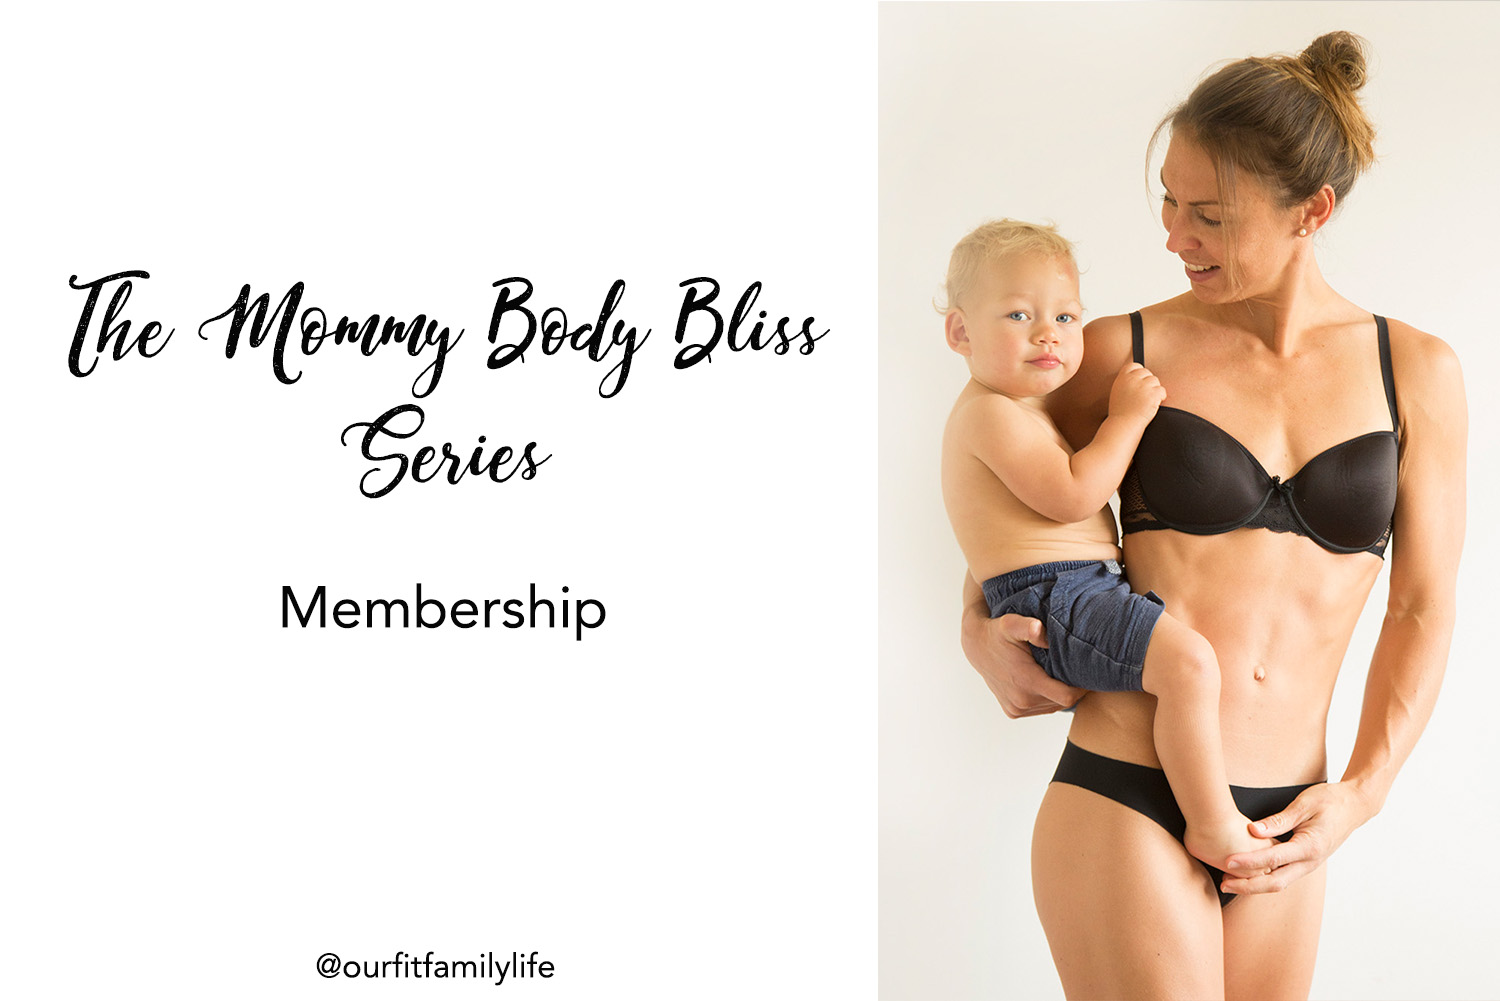 Workout plans for busy Moms